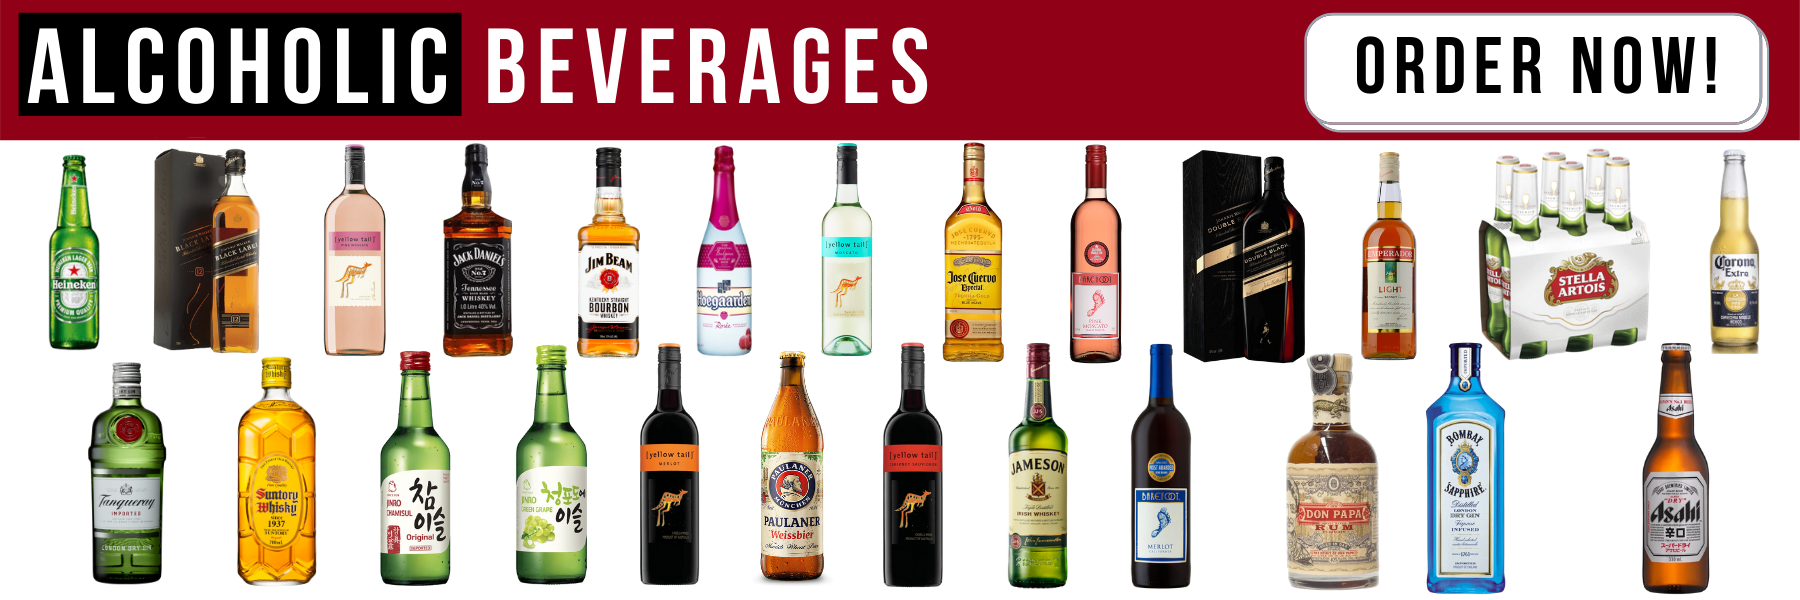 Rfs banner alcoholic beverages 1